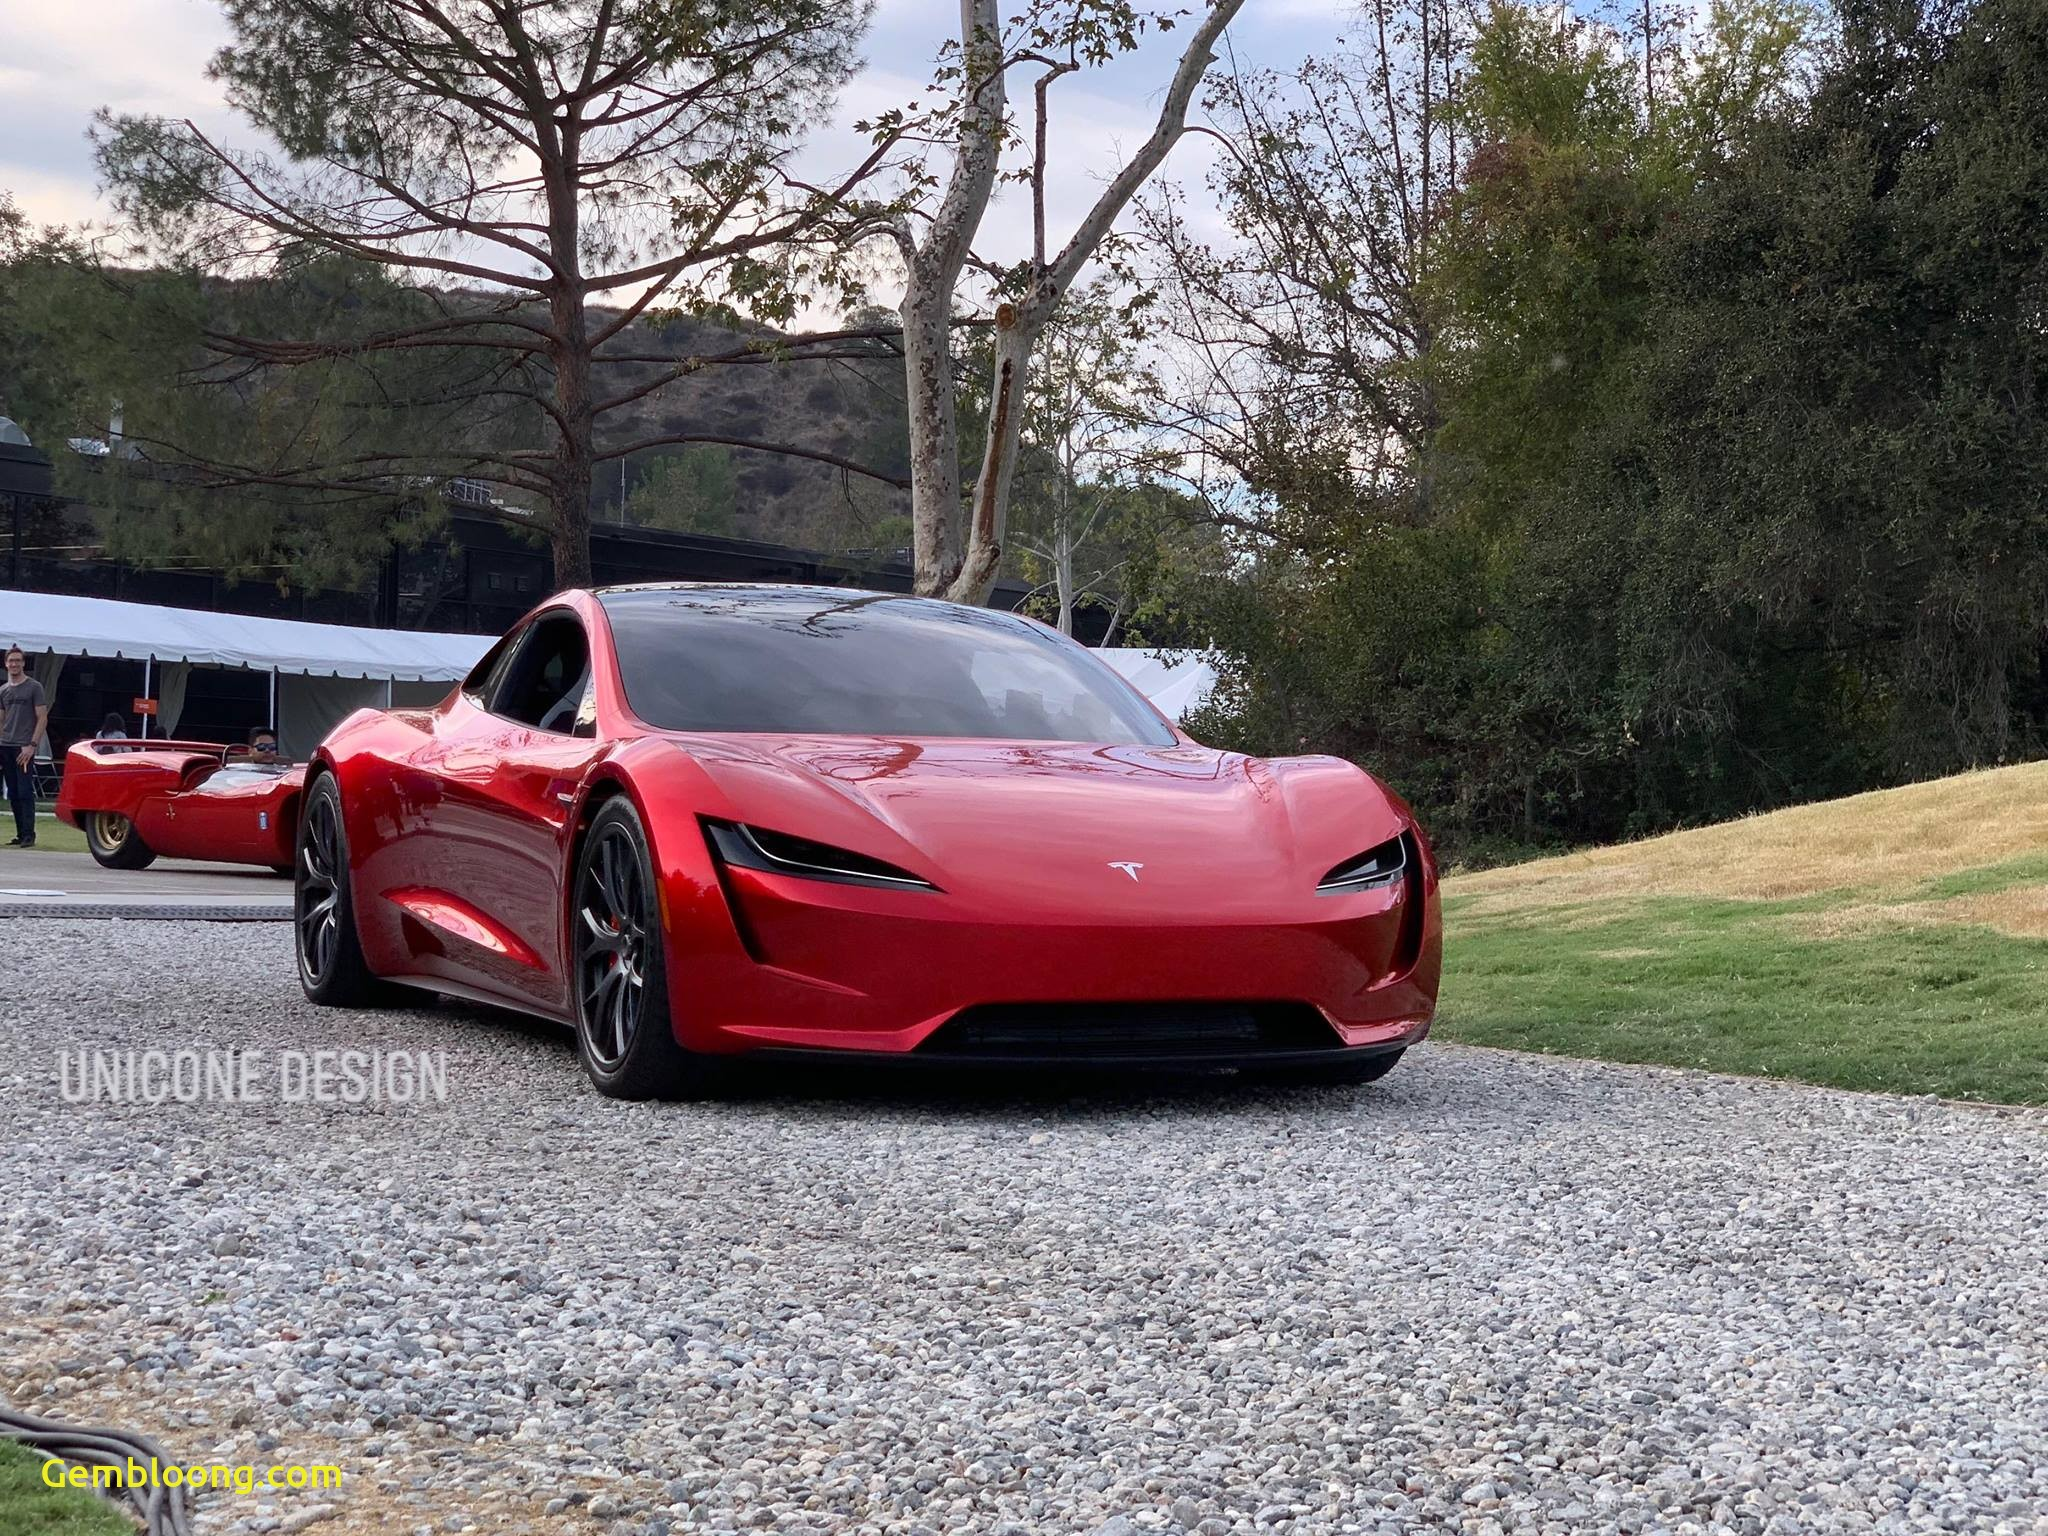 Tesla 2020 Best Of 2020 Cannot E soon Enough Tesla Roadster Out In the Wild